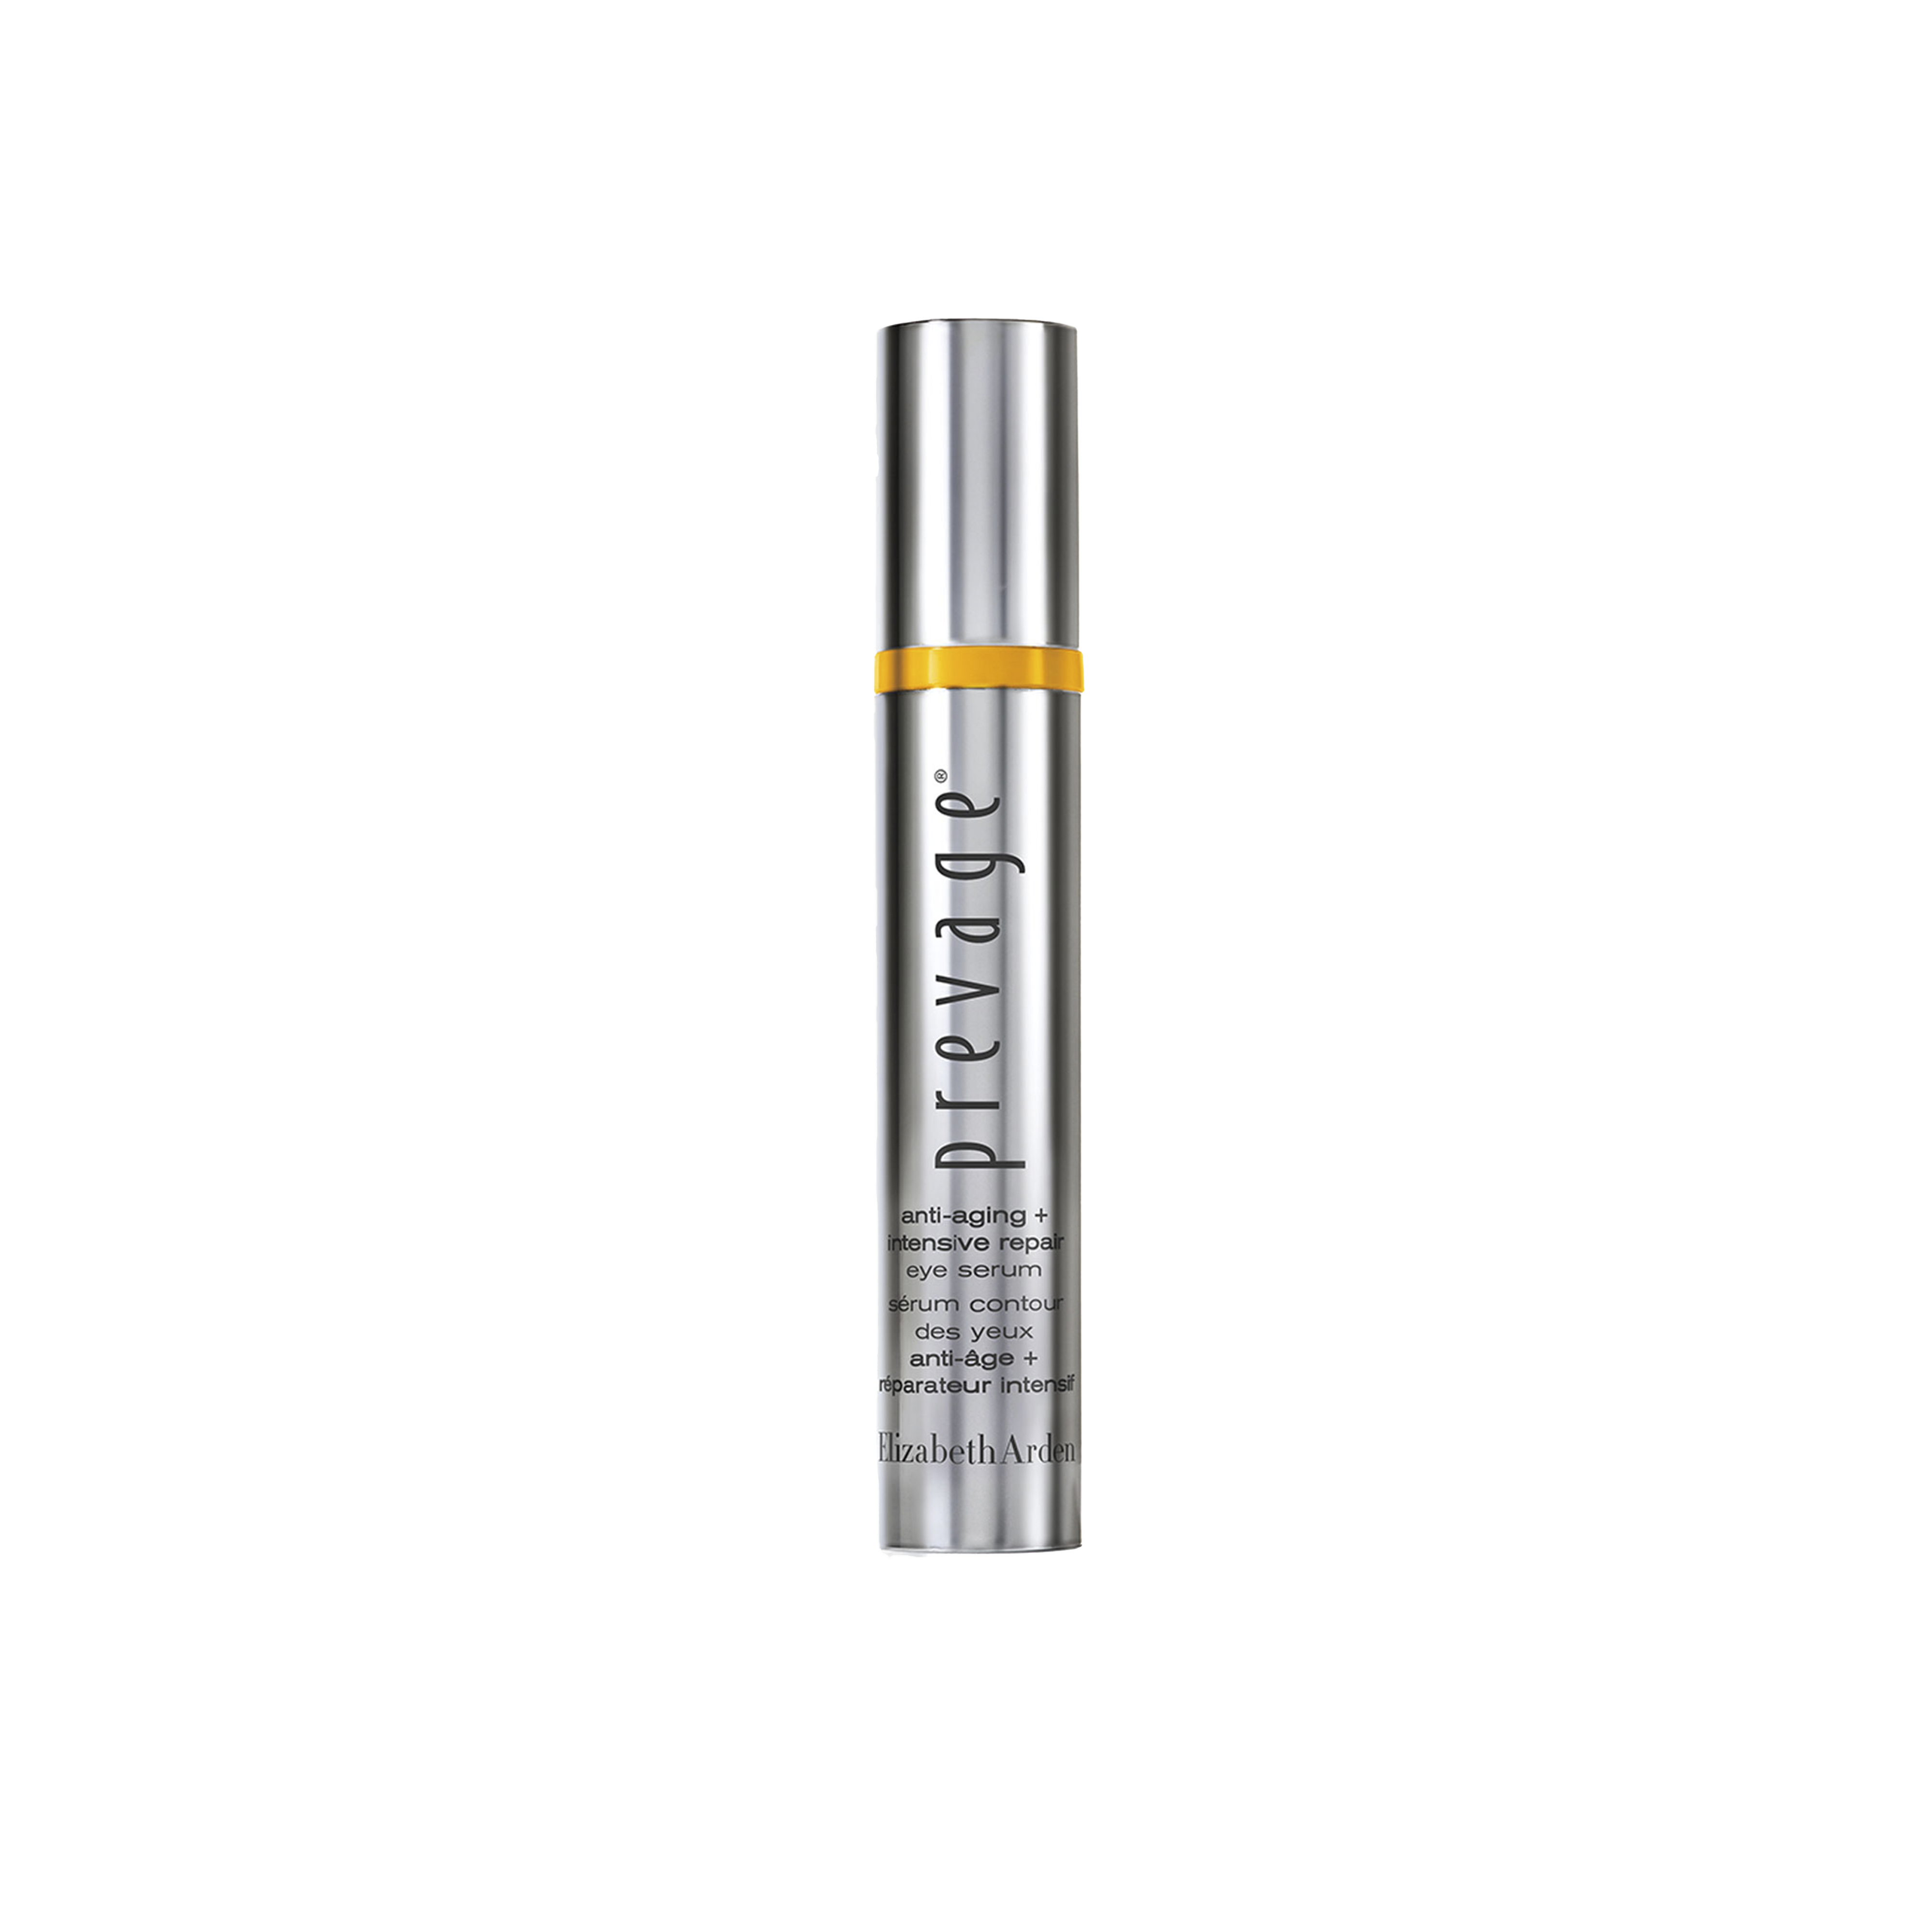 Prevage® Anti-aging Intensive Repair Eye Serum